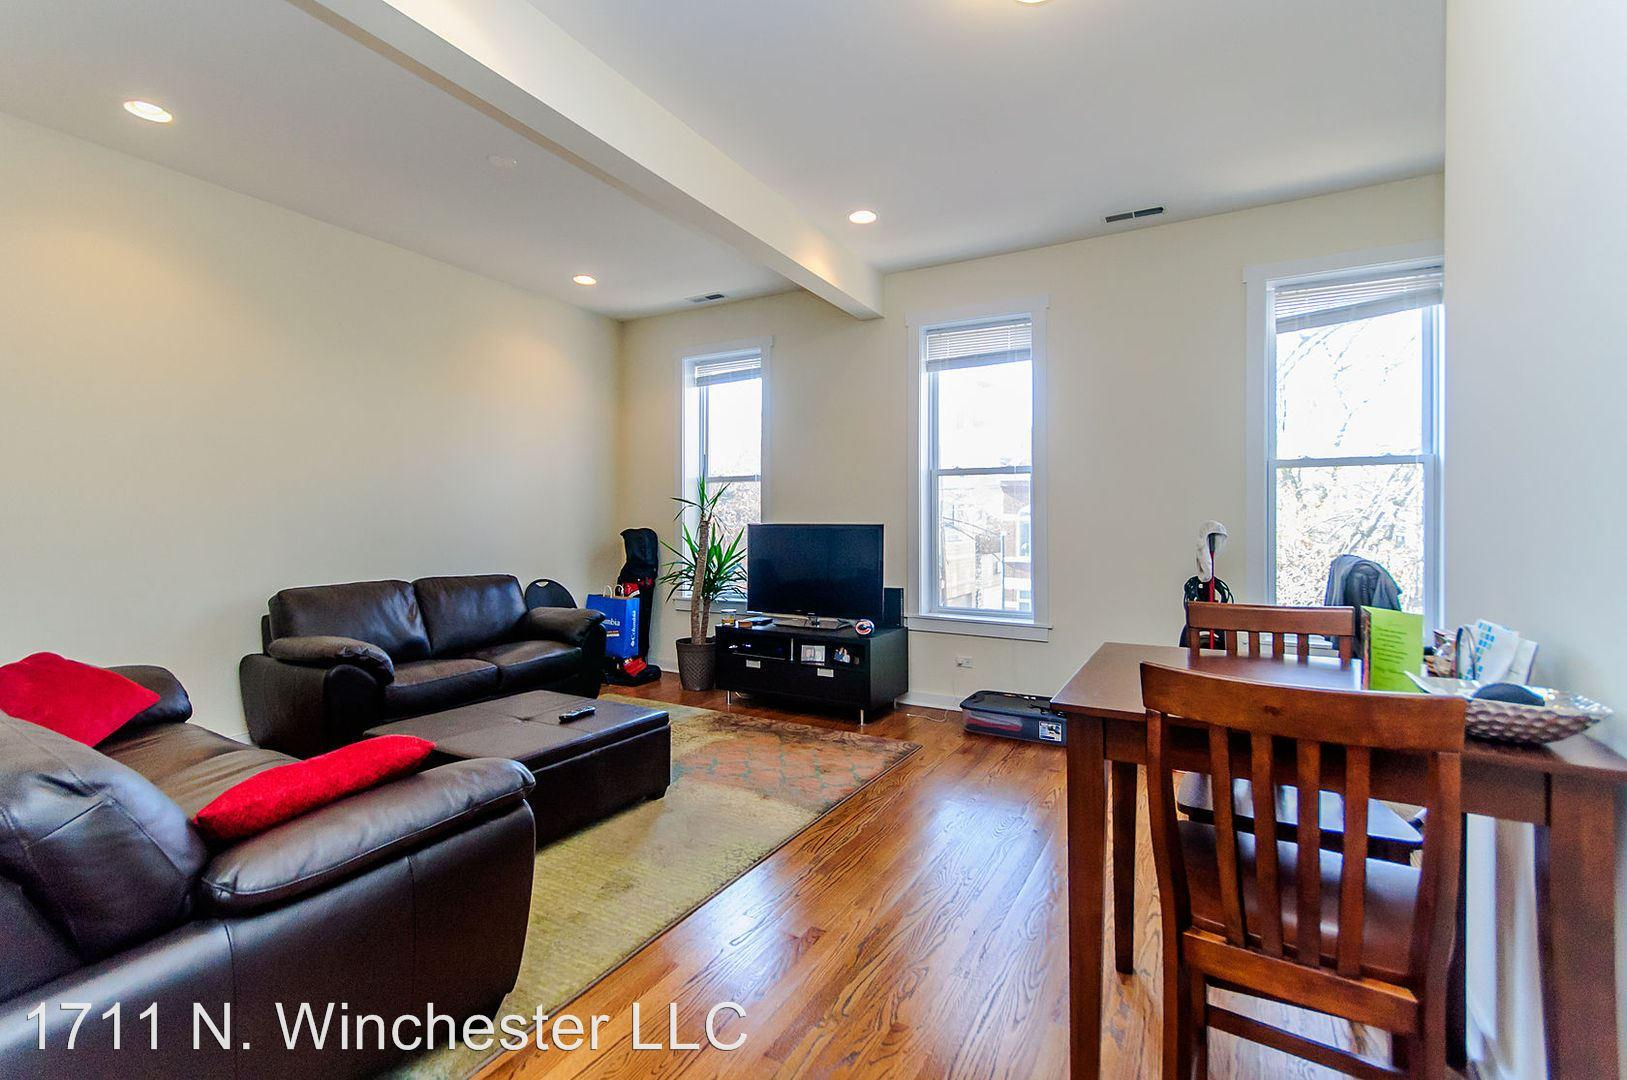 1711 N. Winchester, - 2F photo #1